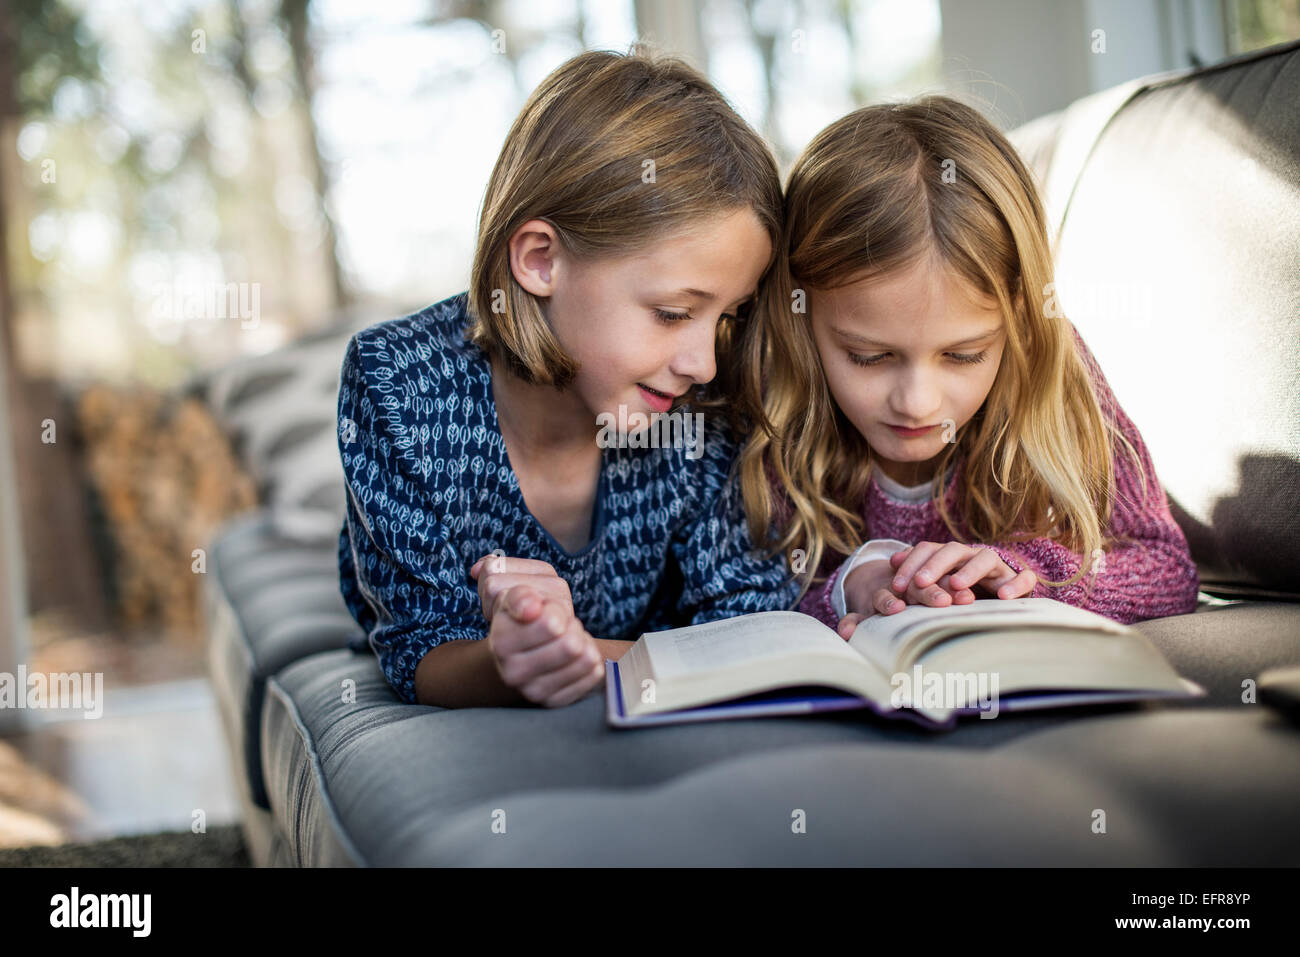 Two blond girls lying on a sofa, looking at a book. - Stock Image